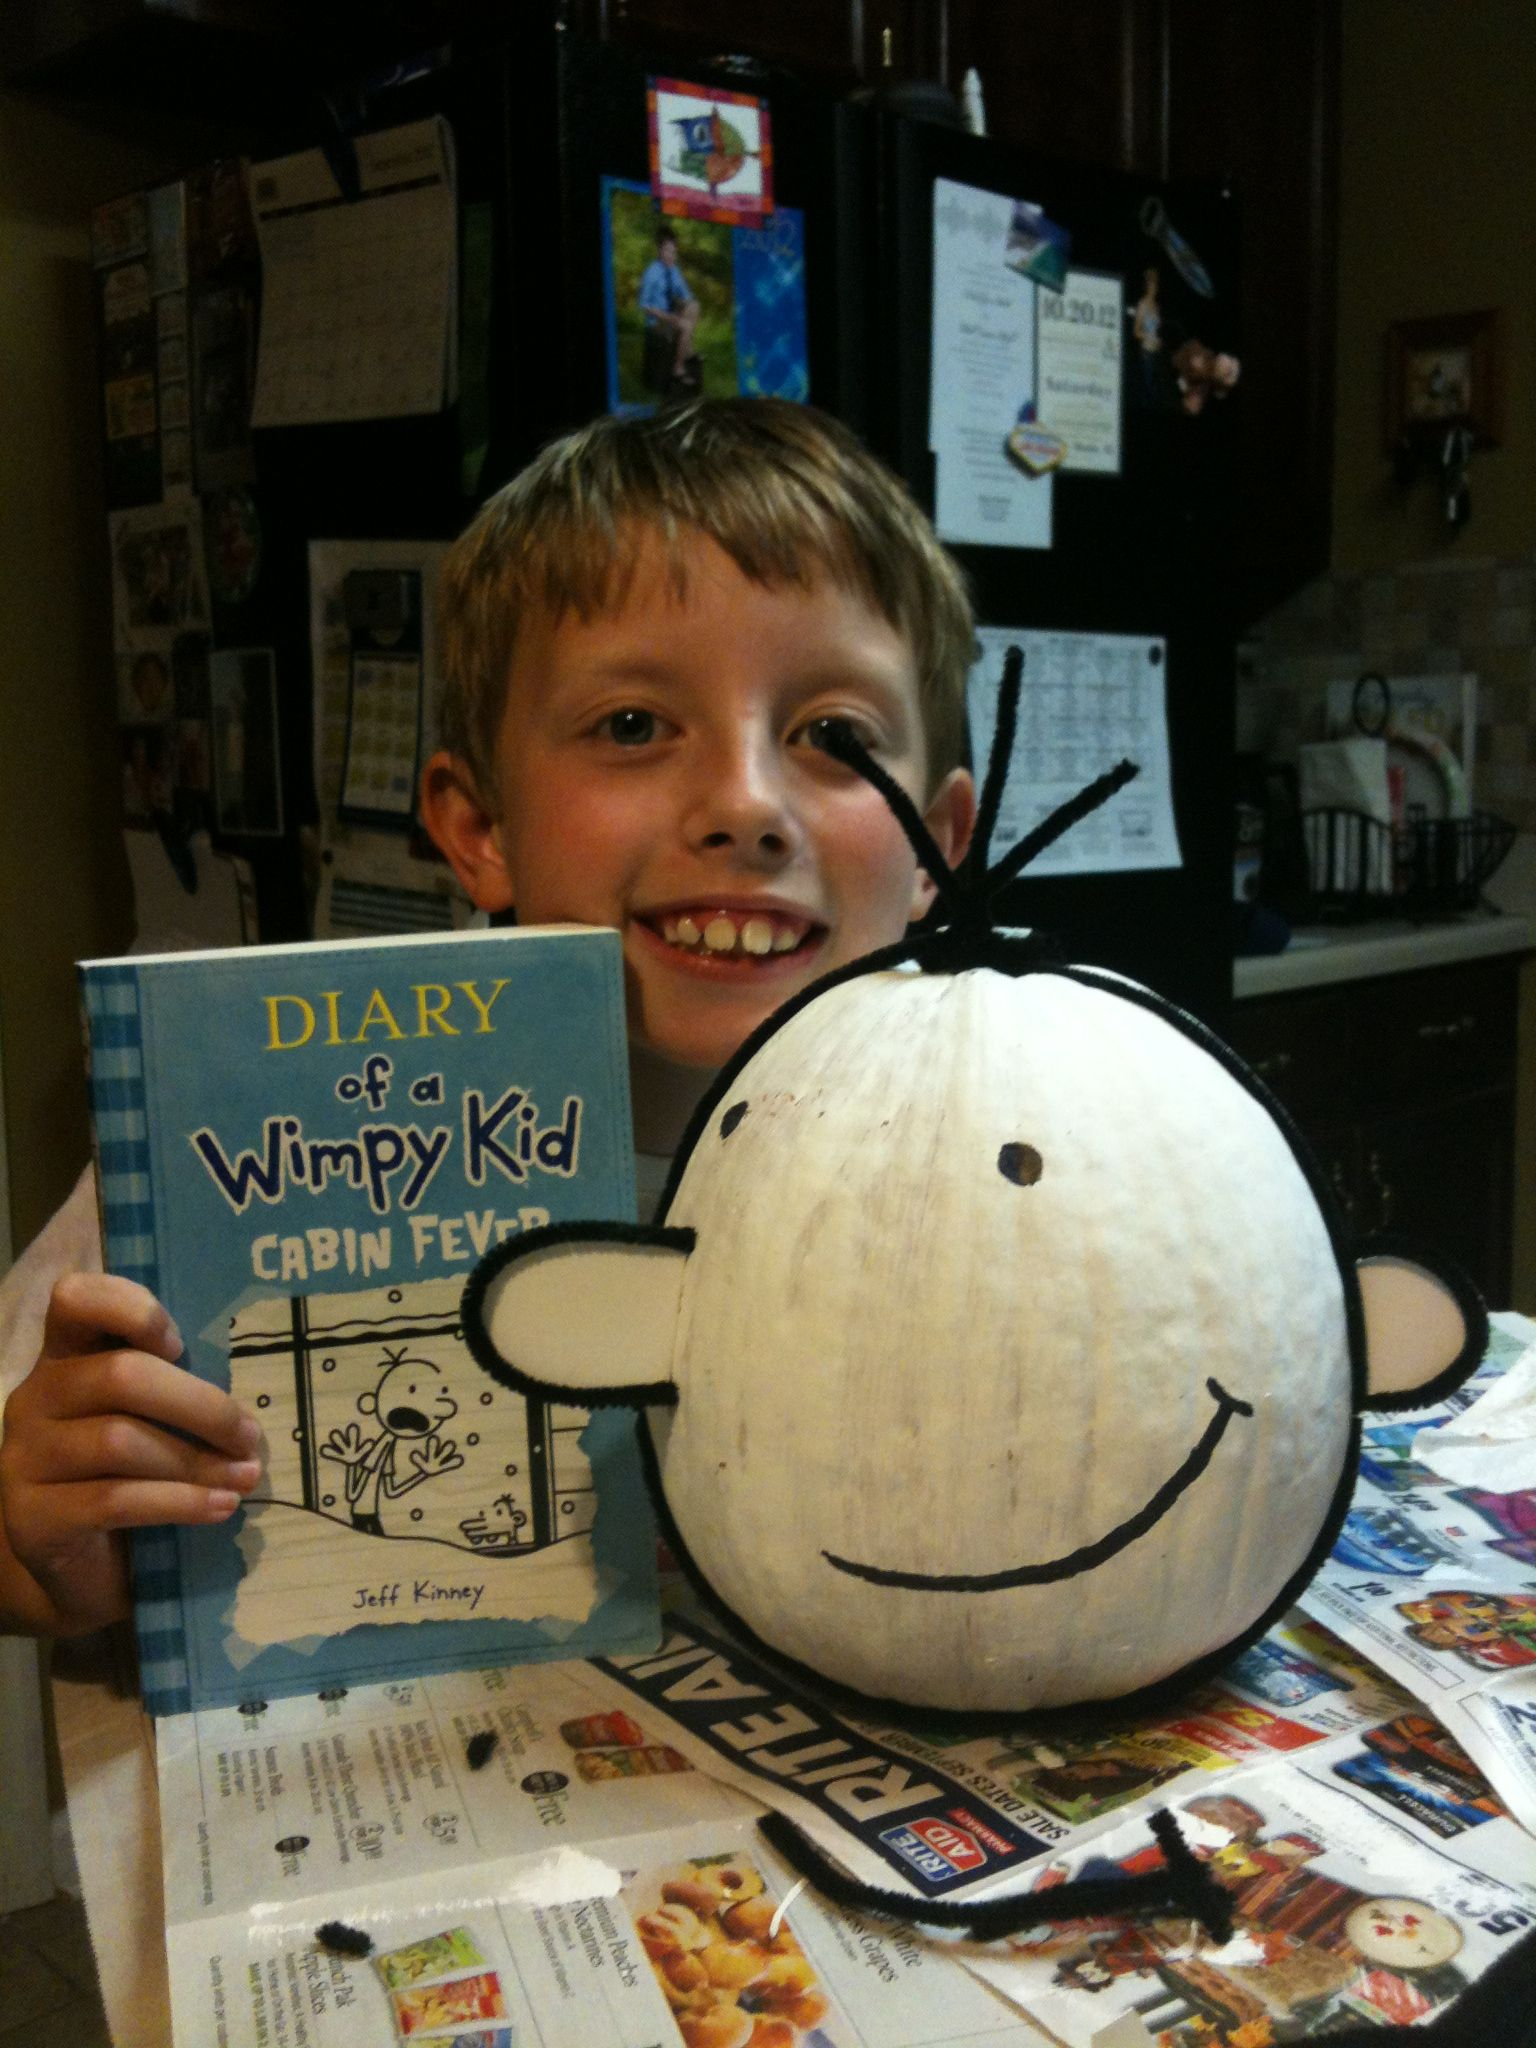 Supplies Needed To Paint A Room diary of a wimpy kid pumpkin - supplies needed: white acrylic